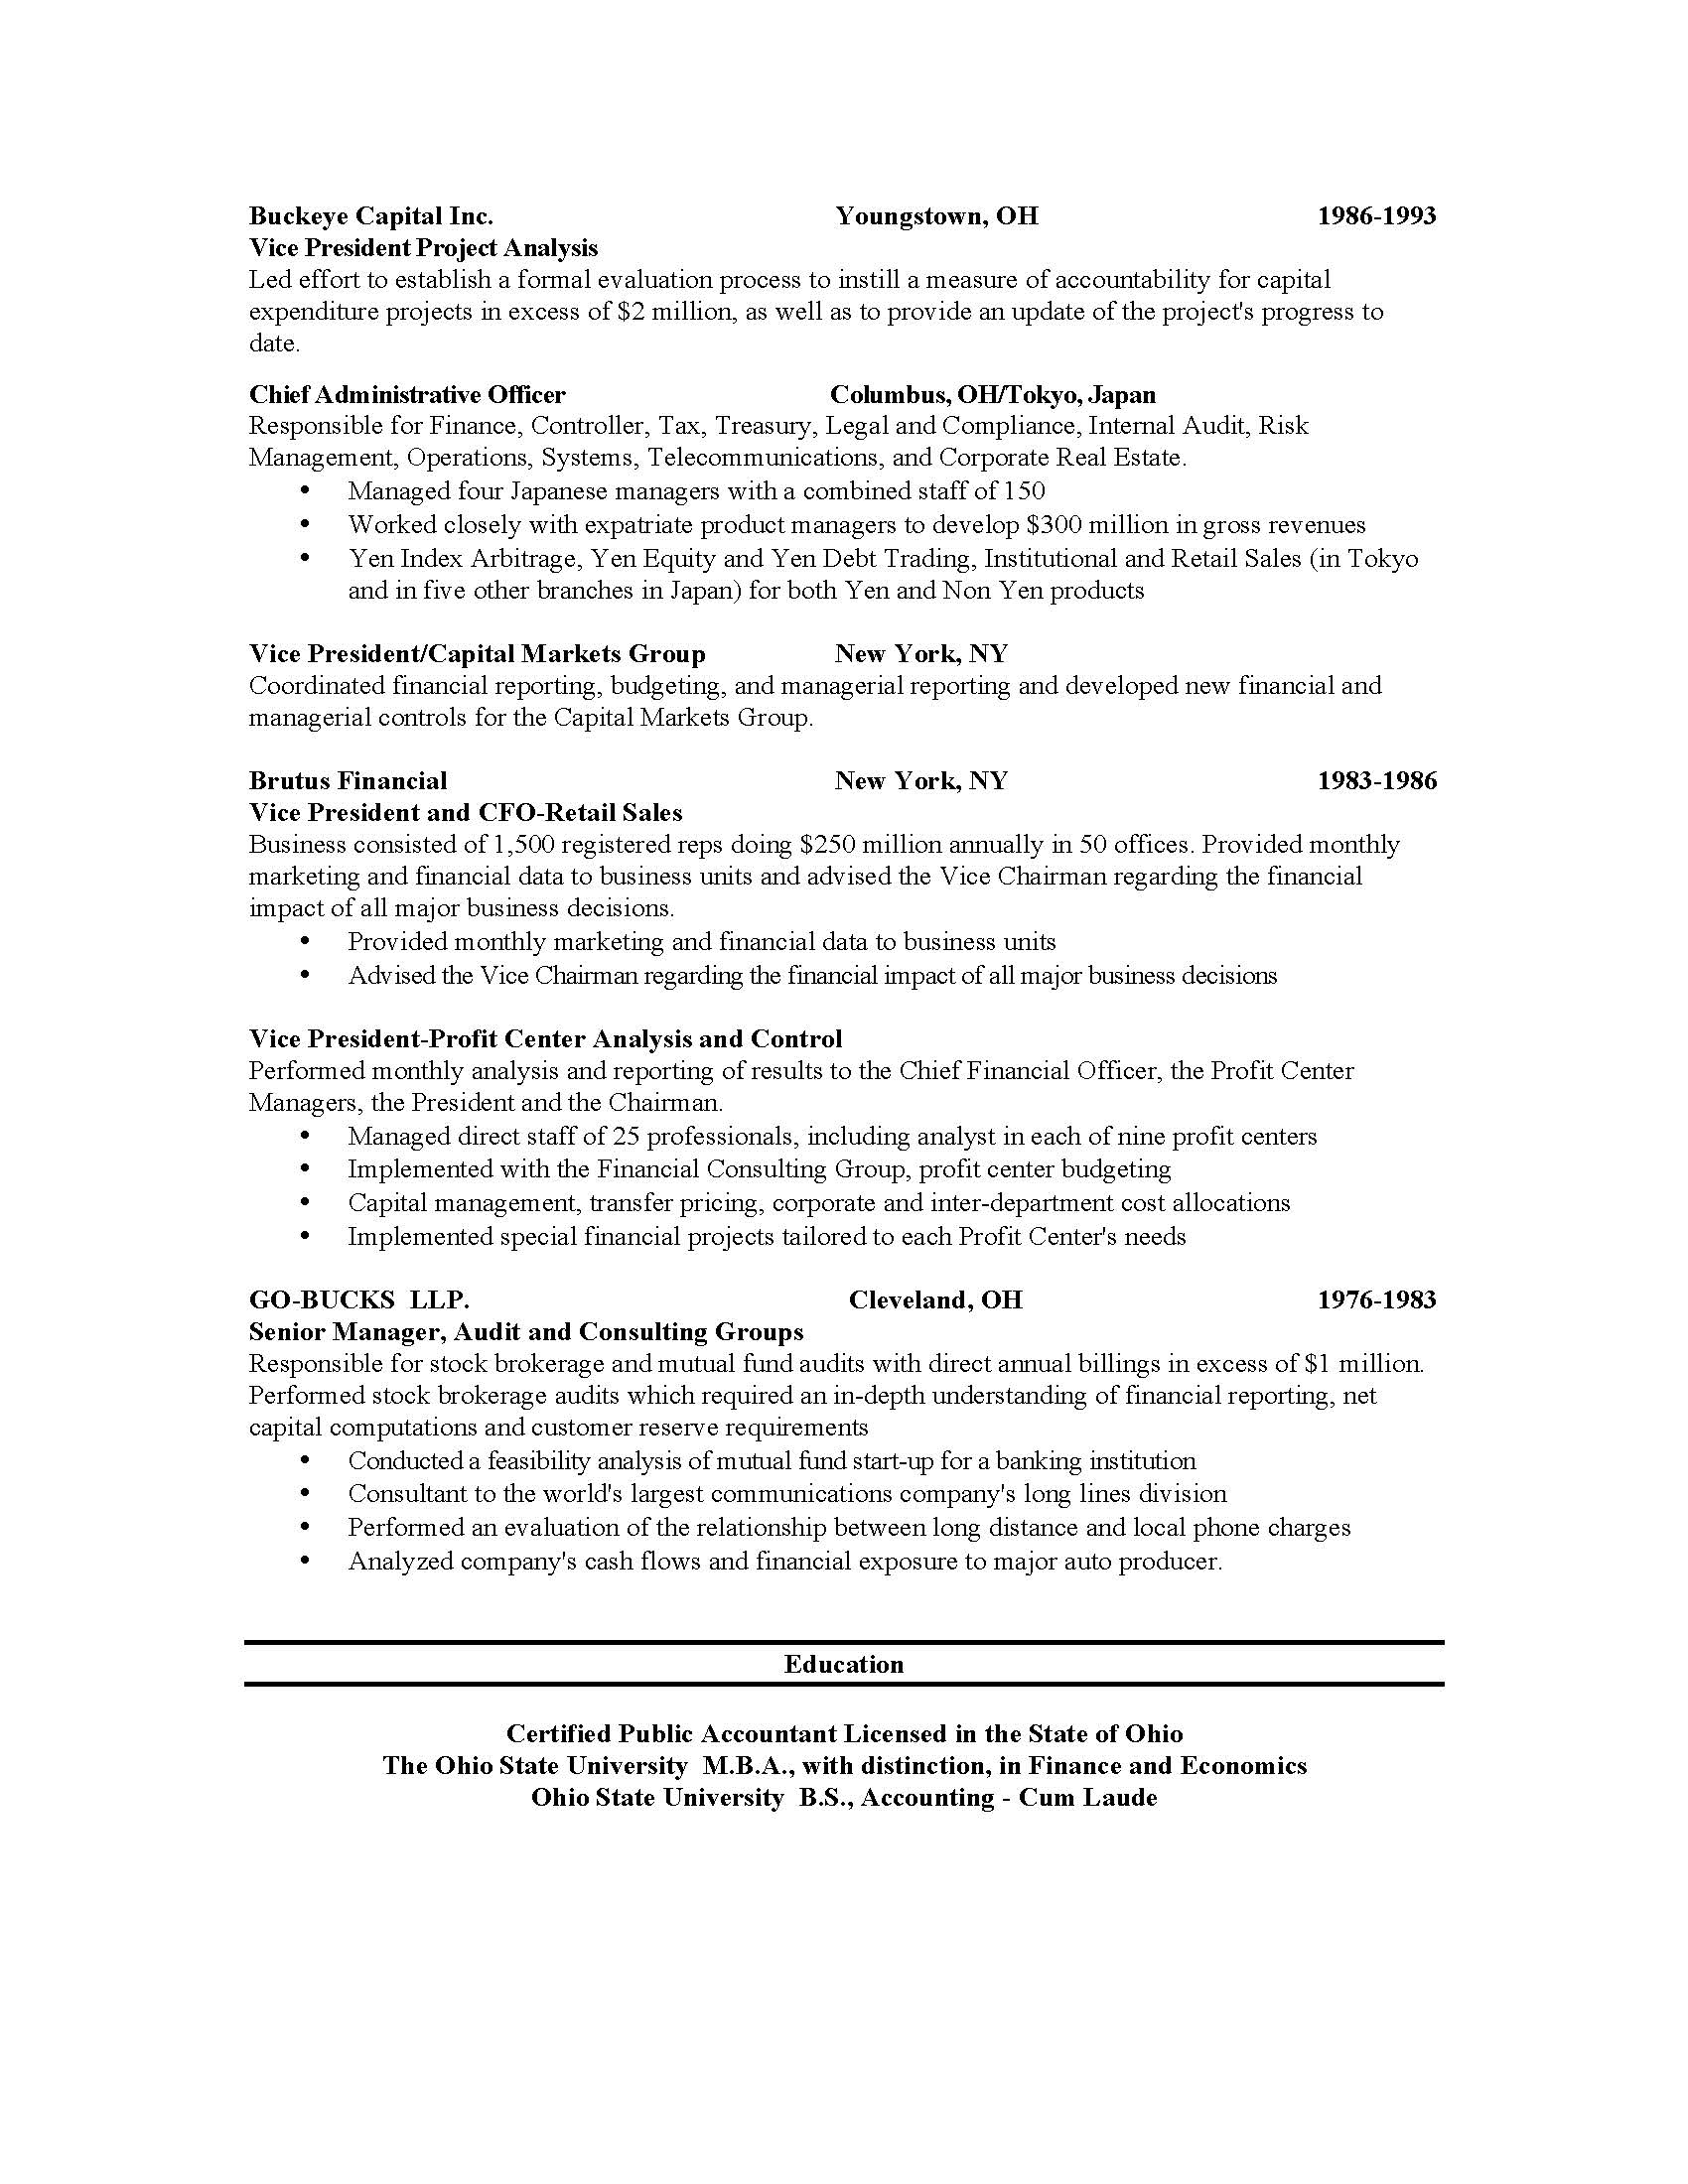 chronological resume chronological resume2. Resume Example. Resume CV Cover Letter